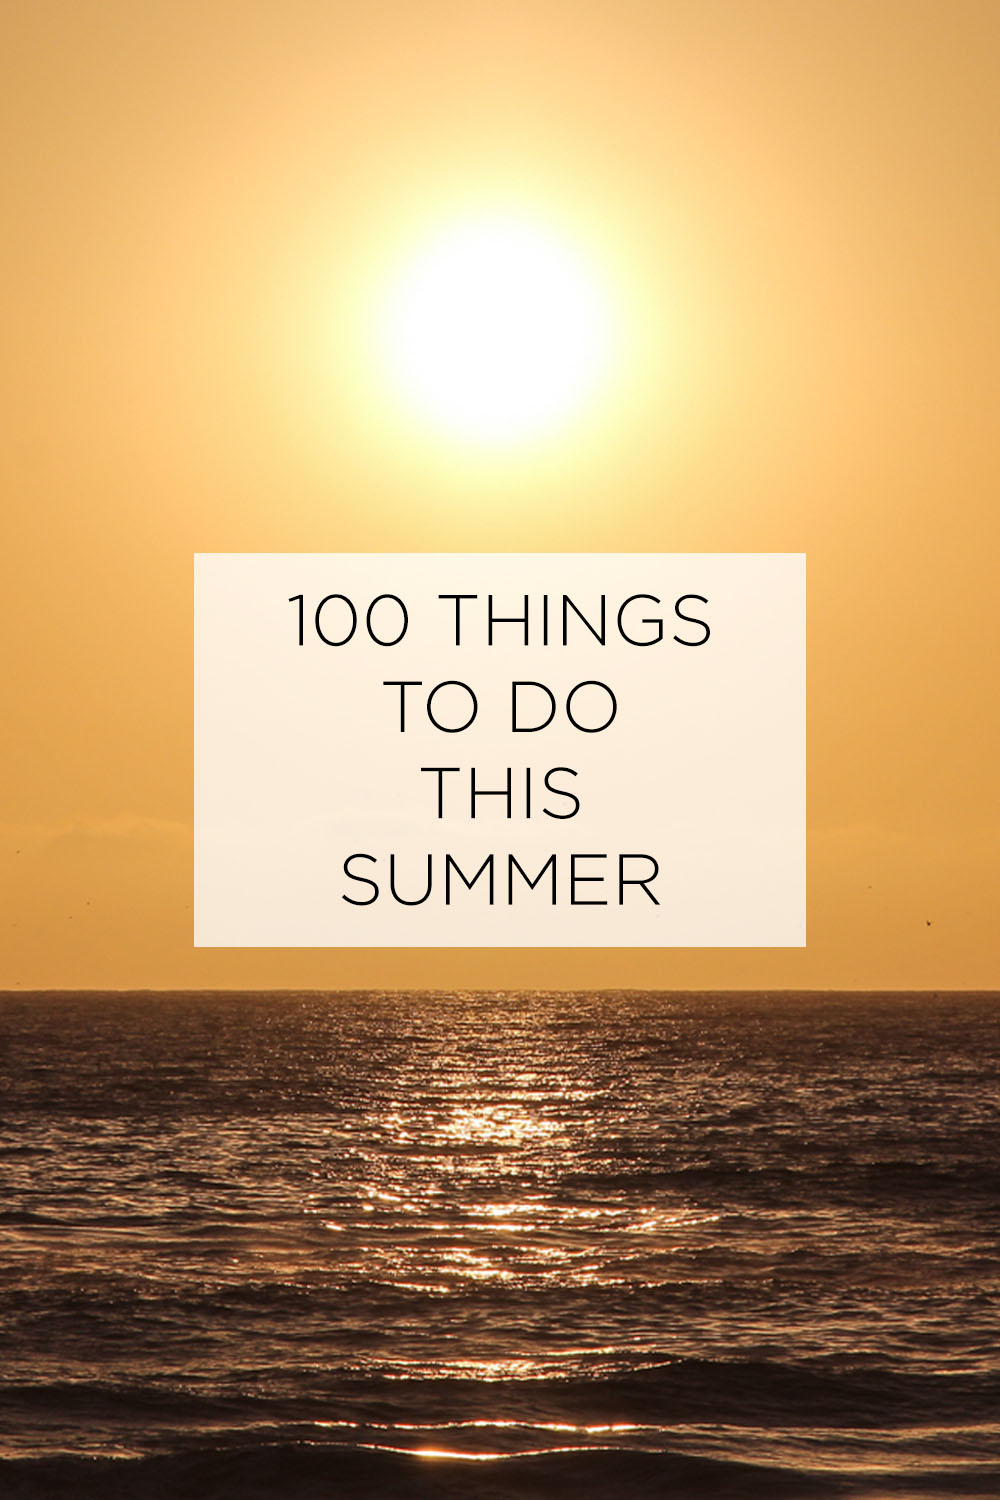 100 THINGS TO DO THIS SUMMER BUCKET LIST